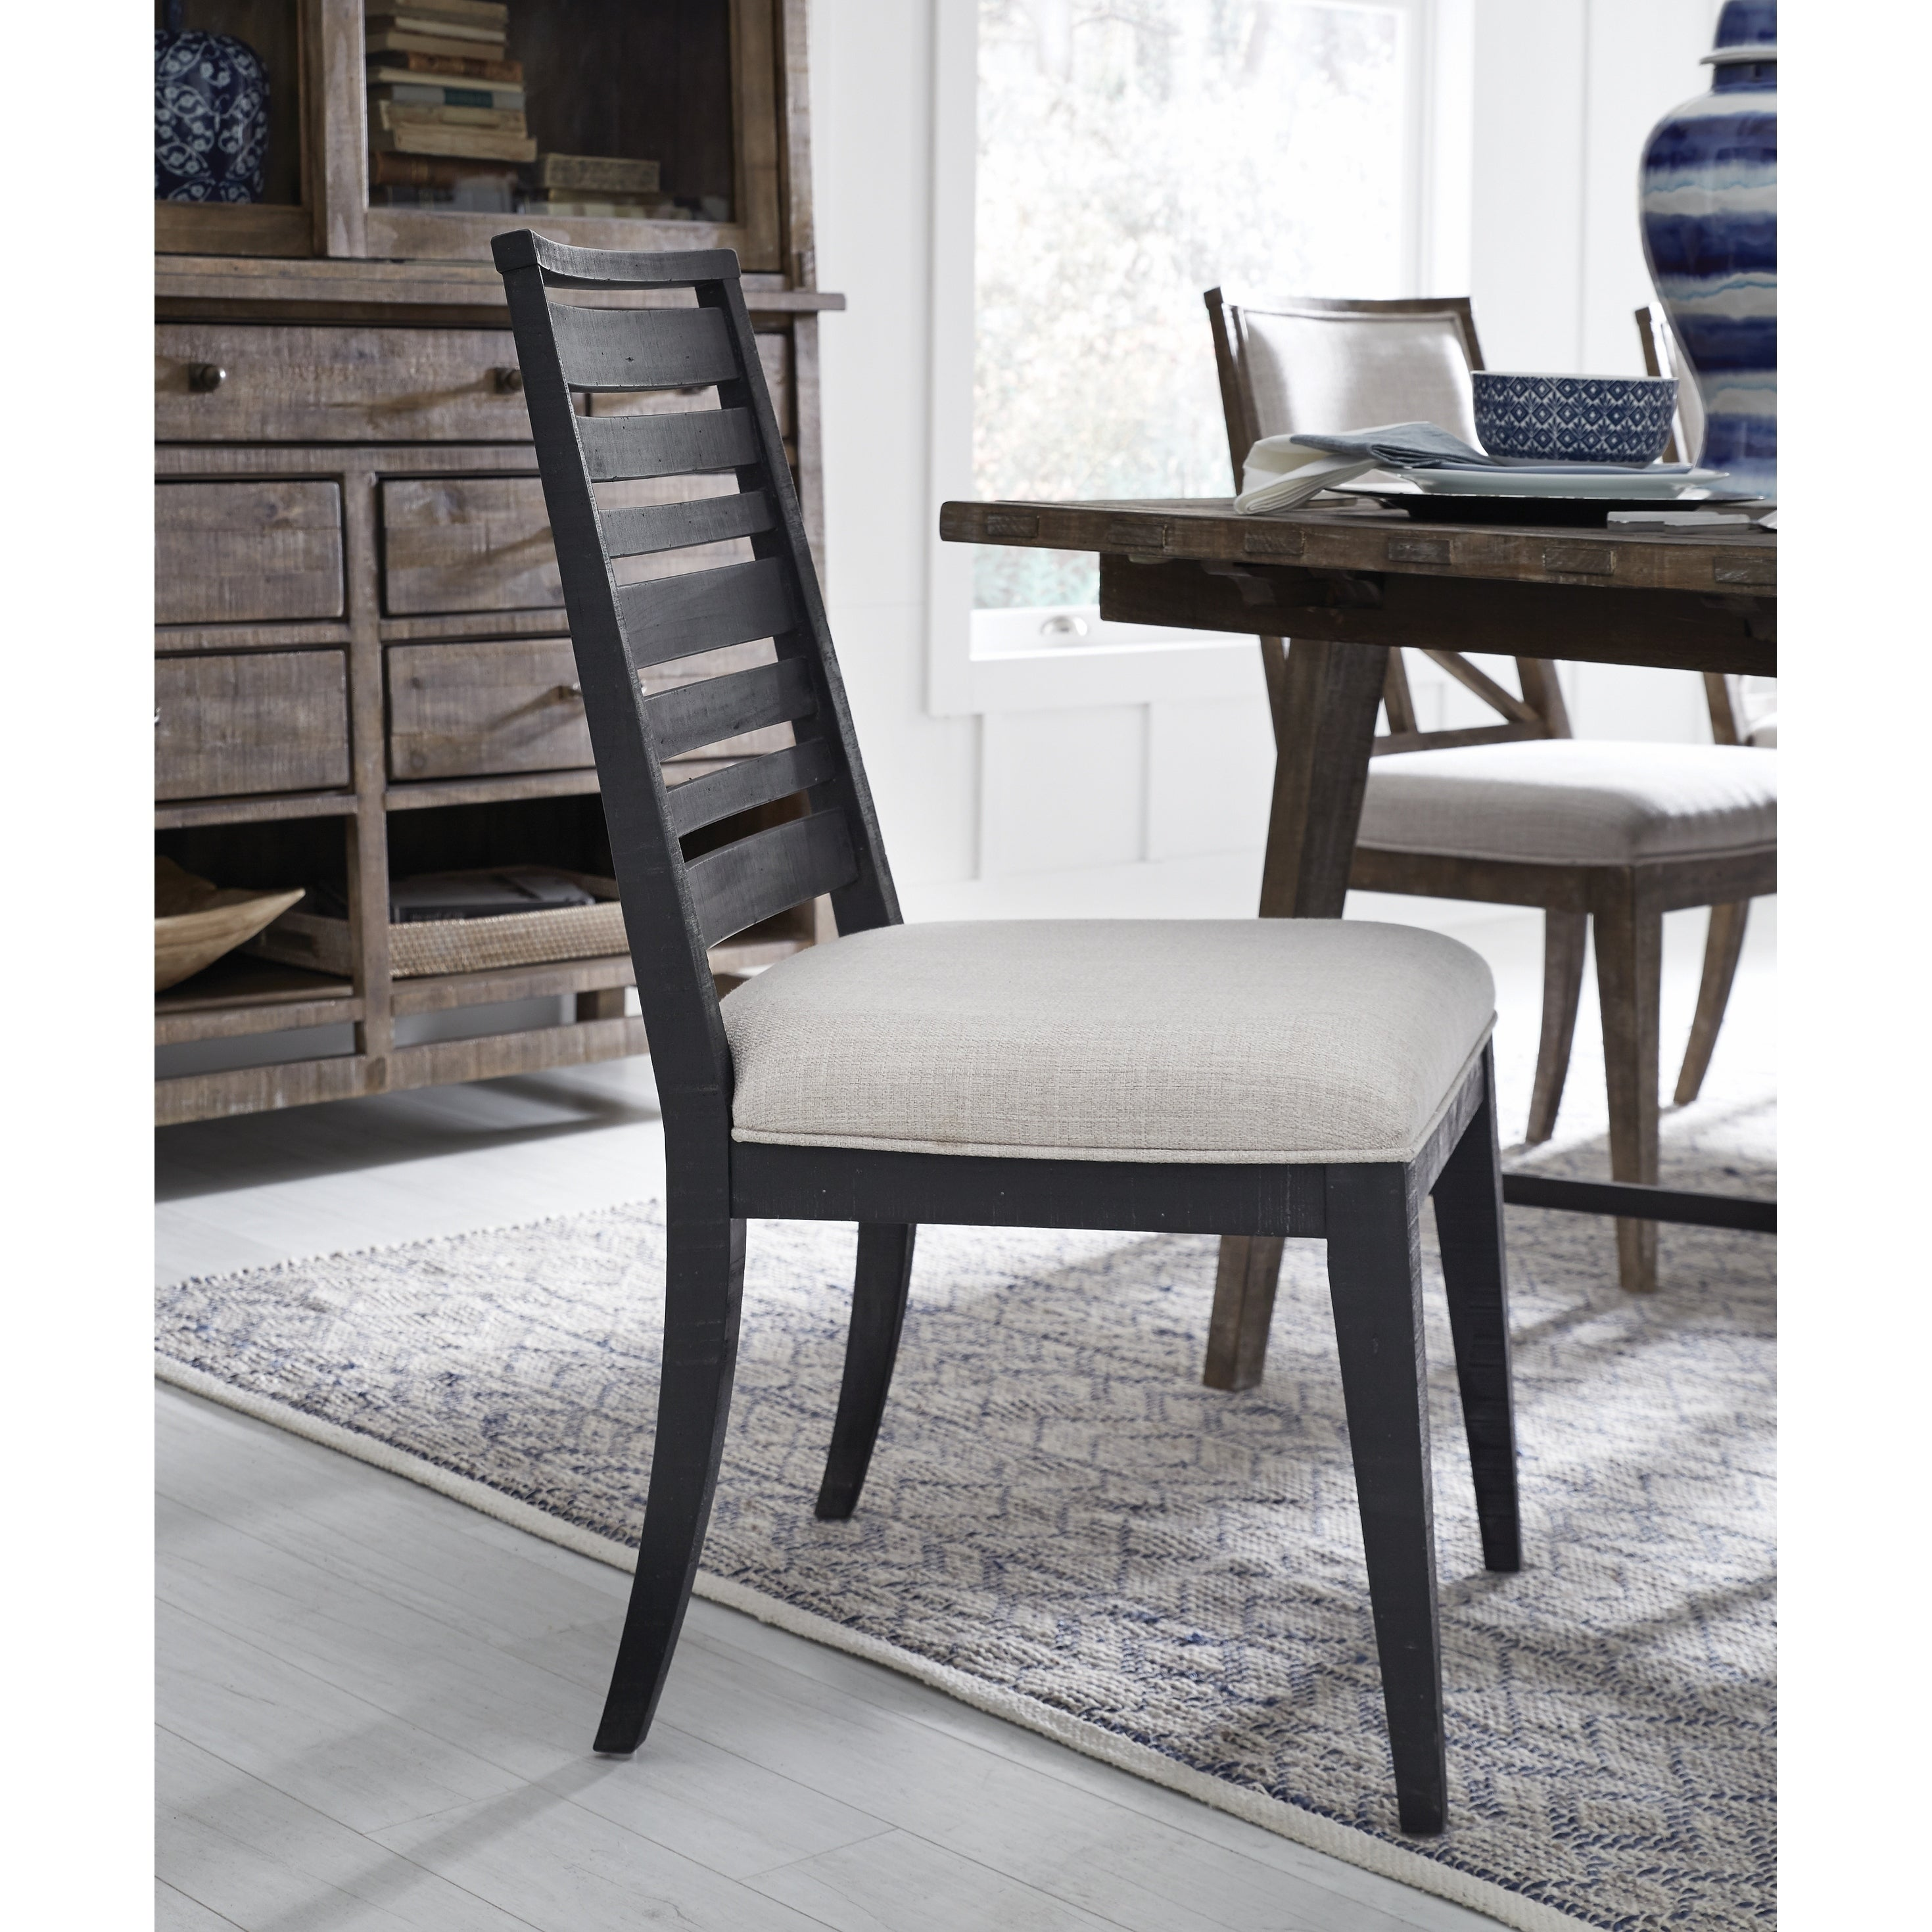 Lake Haven Rustic Washed Denim Dining Side Chair